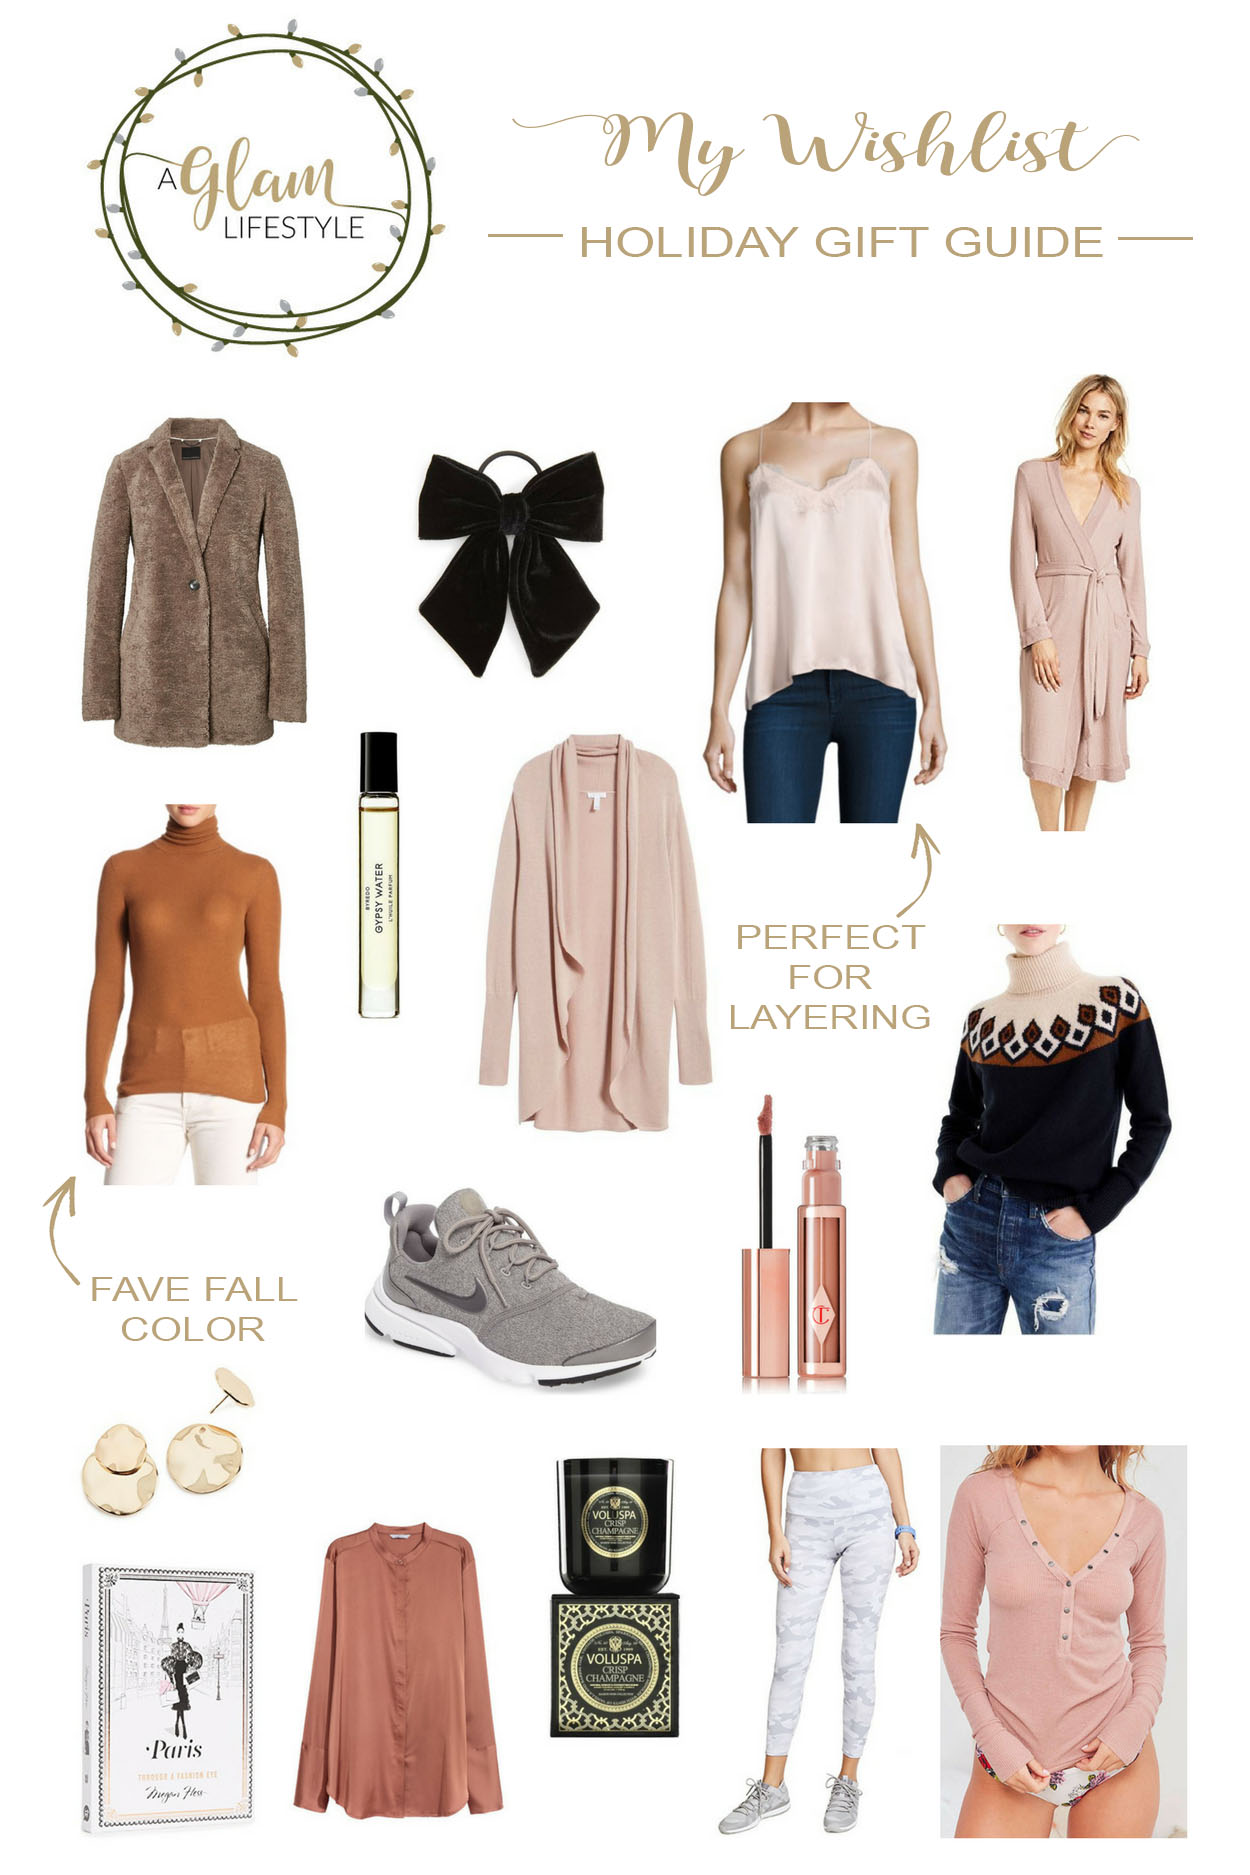 Get my wishlist here - Holiday gift guide shared by South Florida fashion blogger Amanda of A Glam Lifestyle